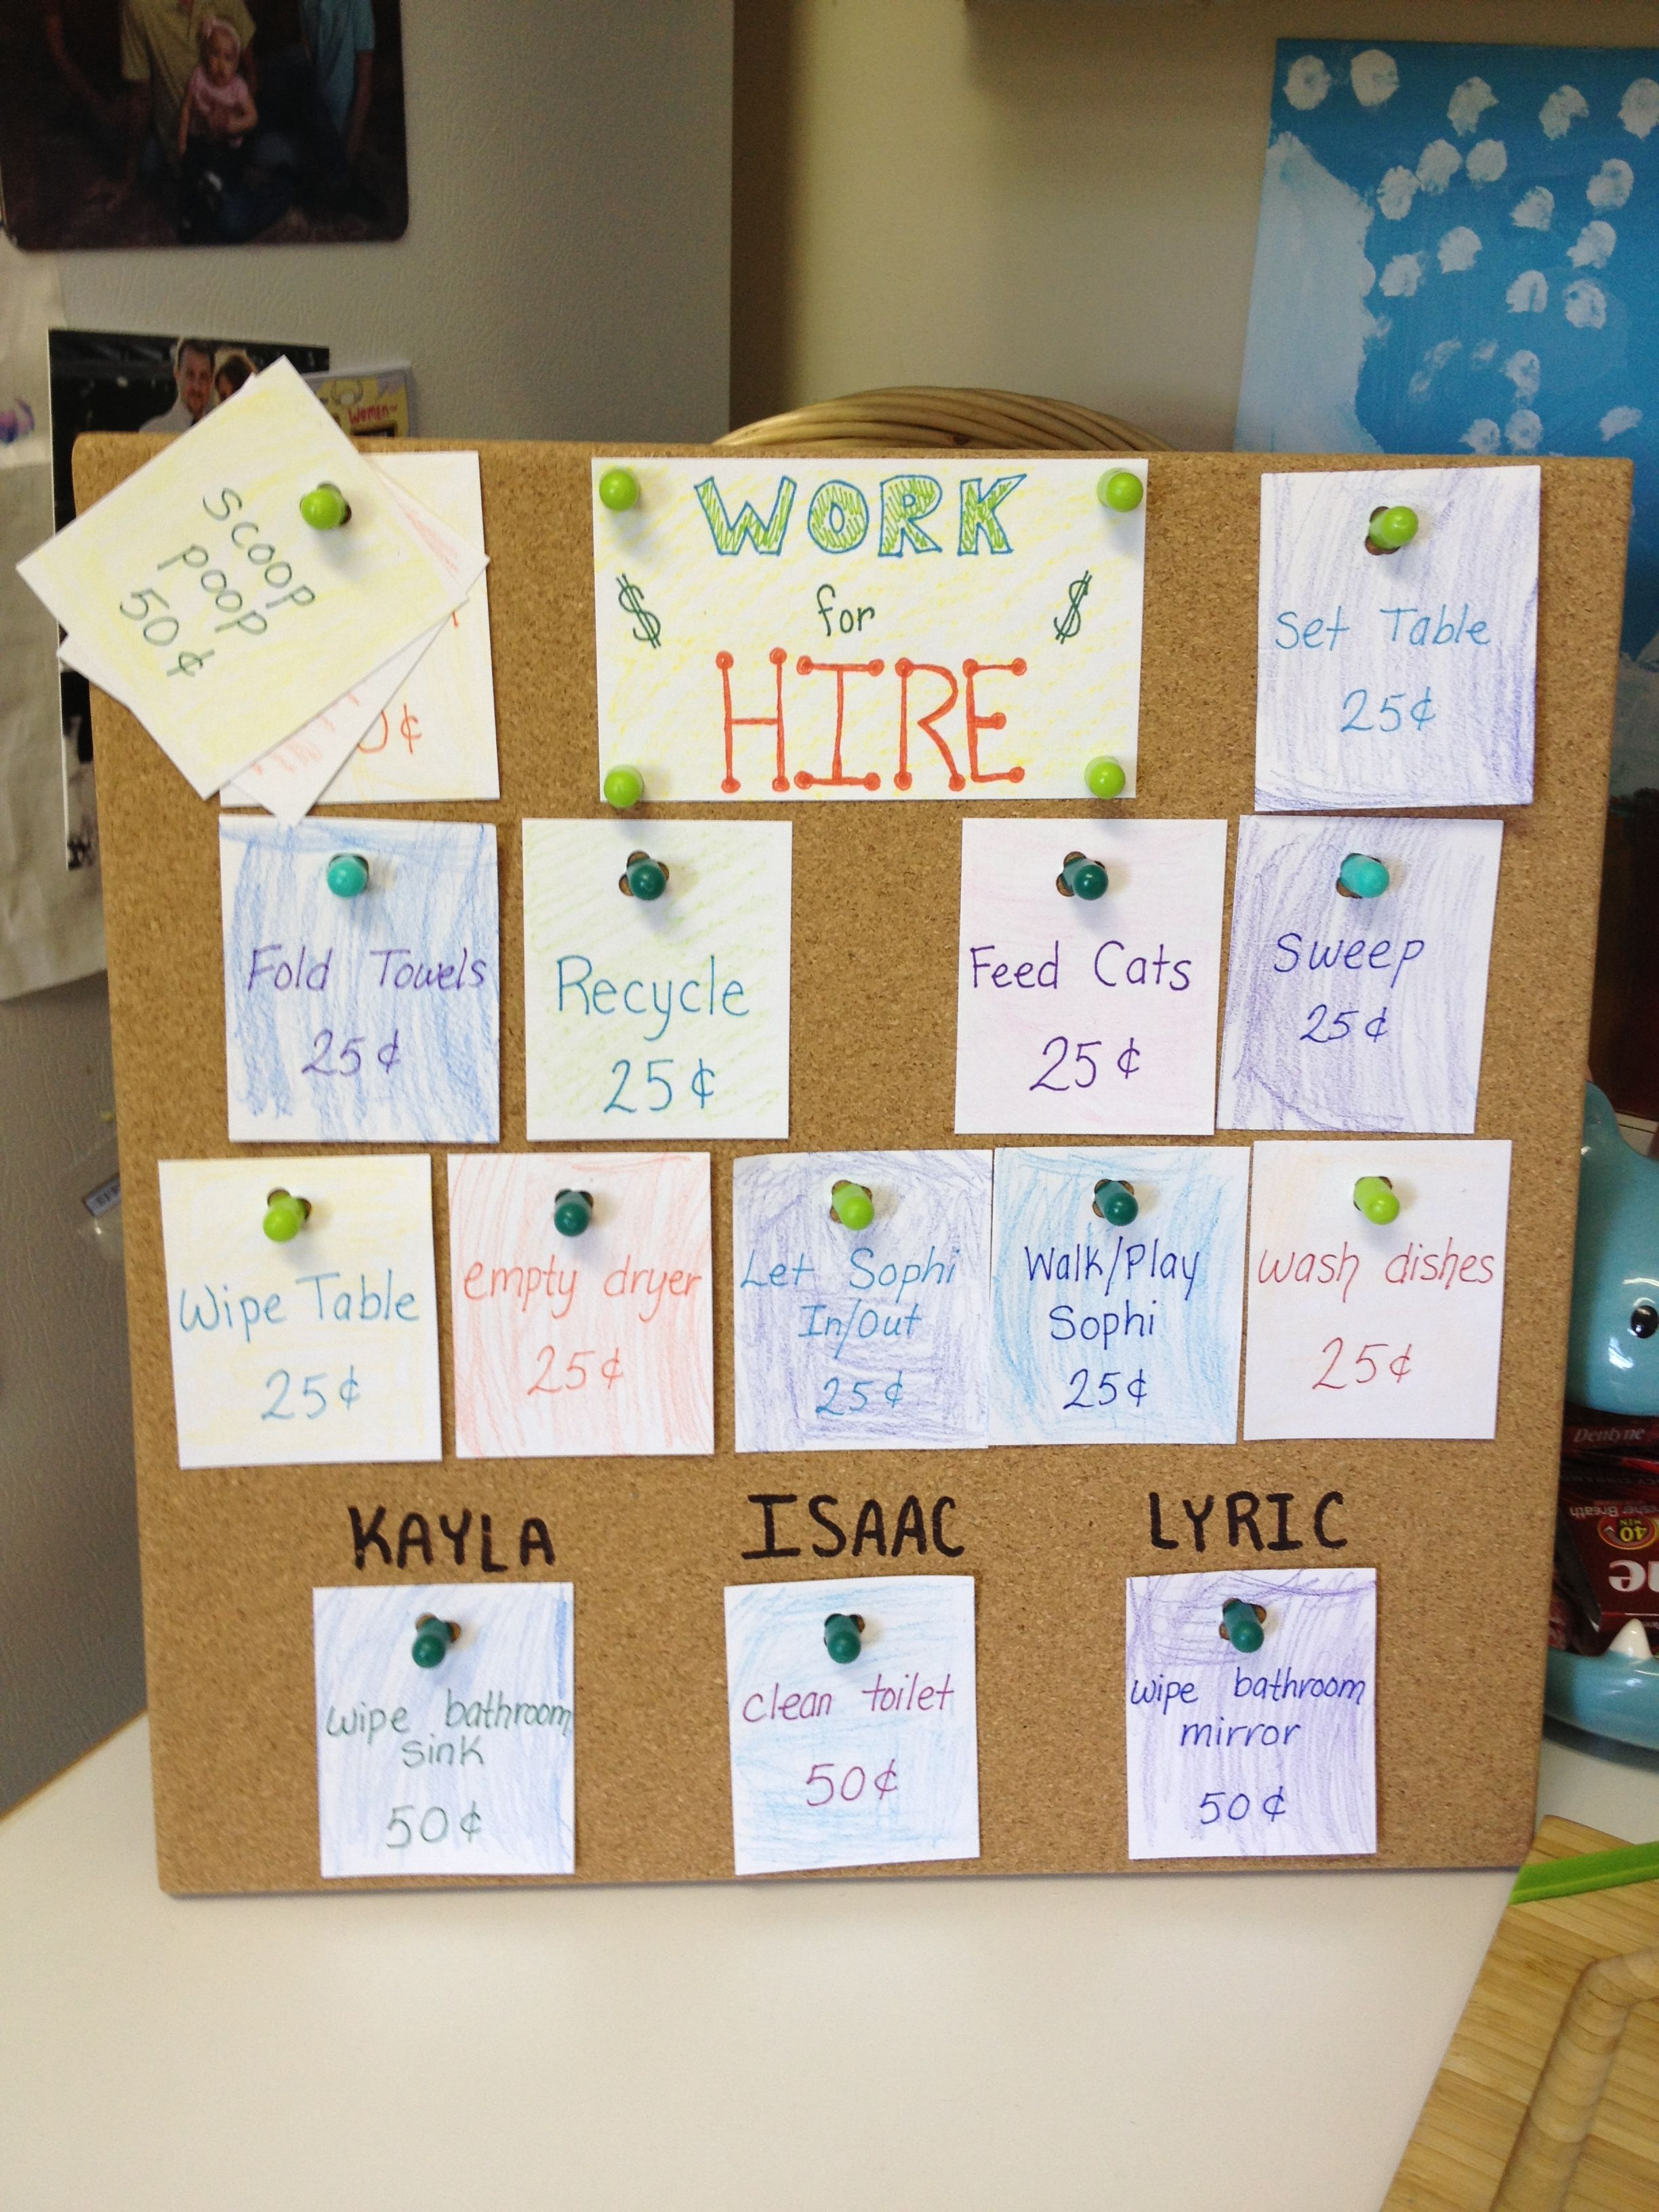 Cork Board Chore Chart Punch Holes In Chore Cards And